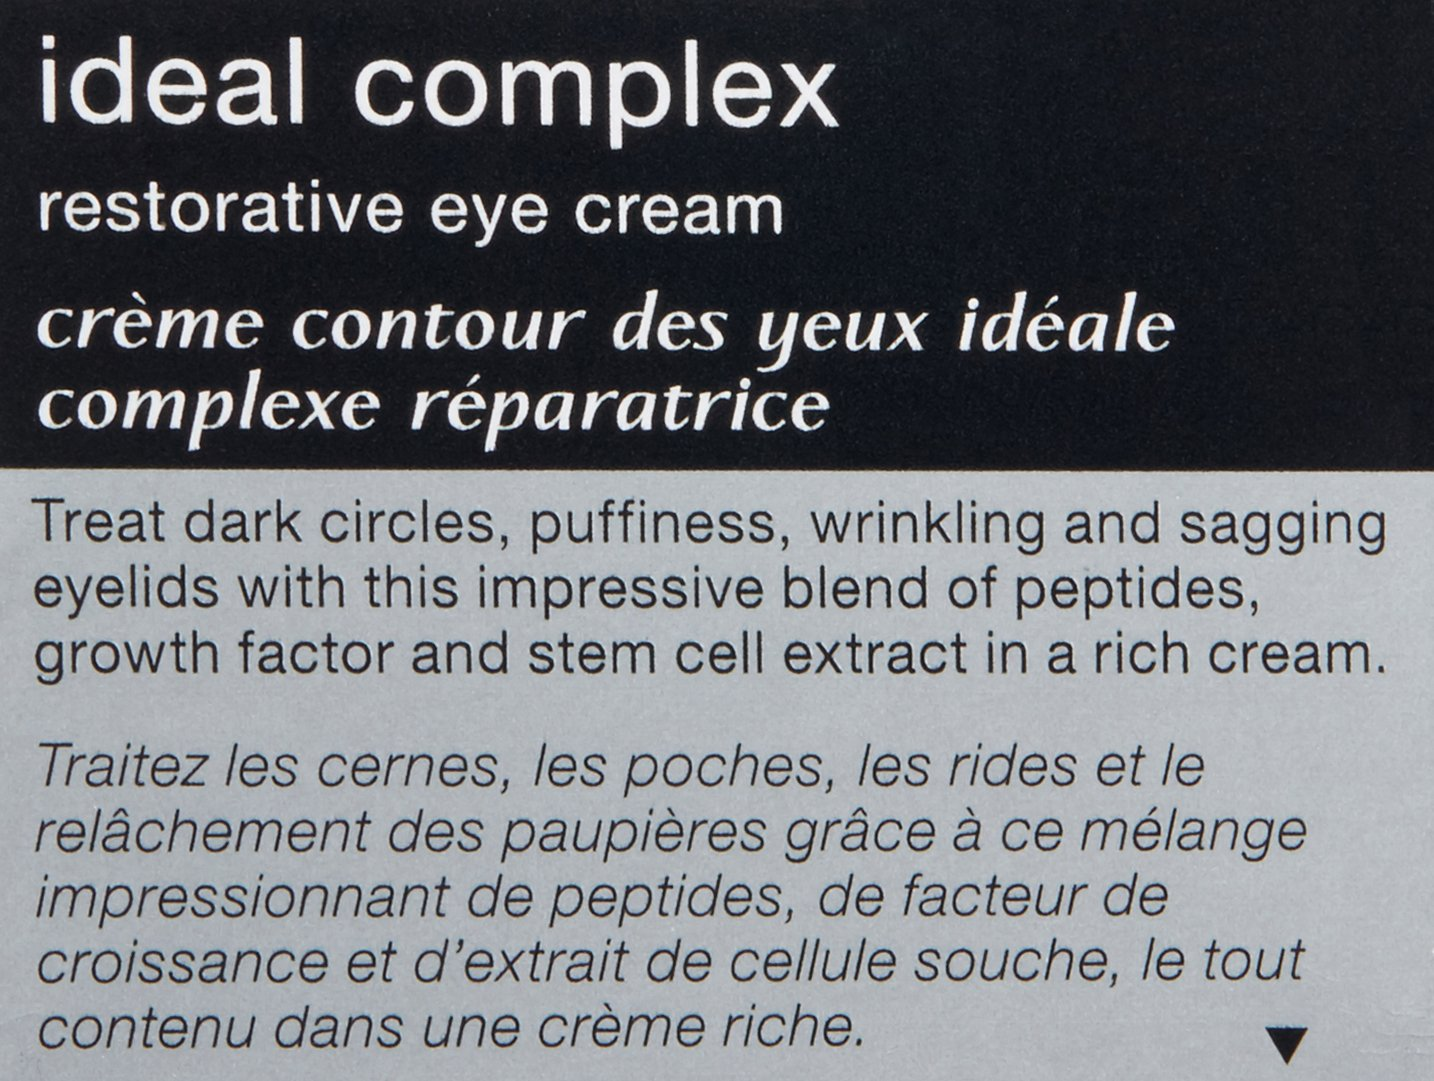 PCA SKIN Ideal Complex Restorative Eye Cream, 0.5 ounce by PCA SKIN (Image #2)